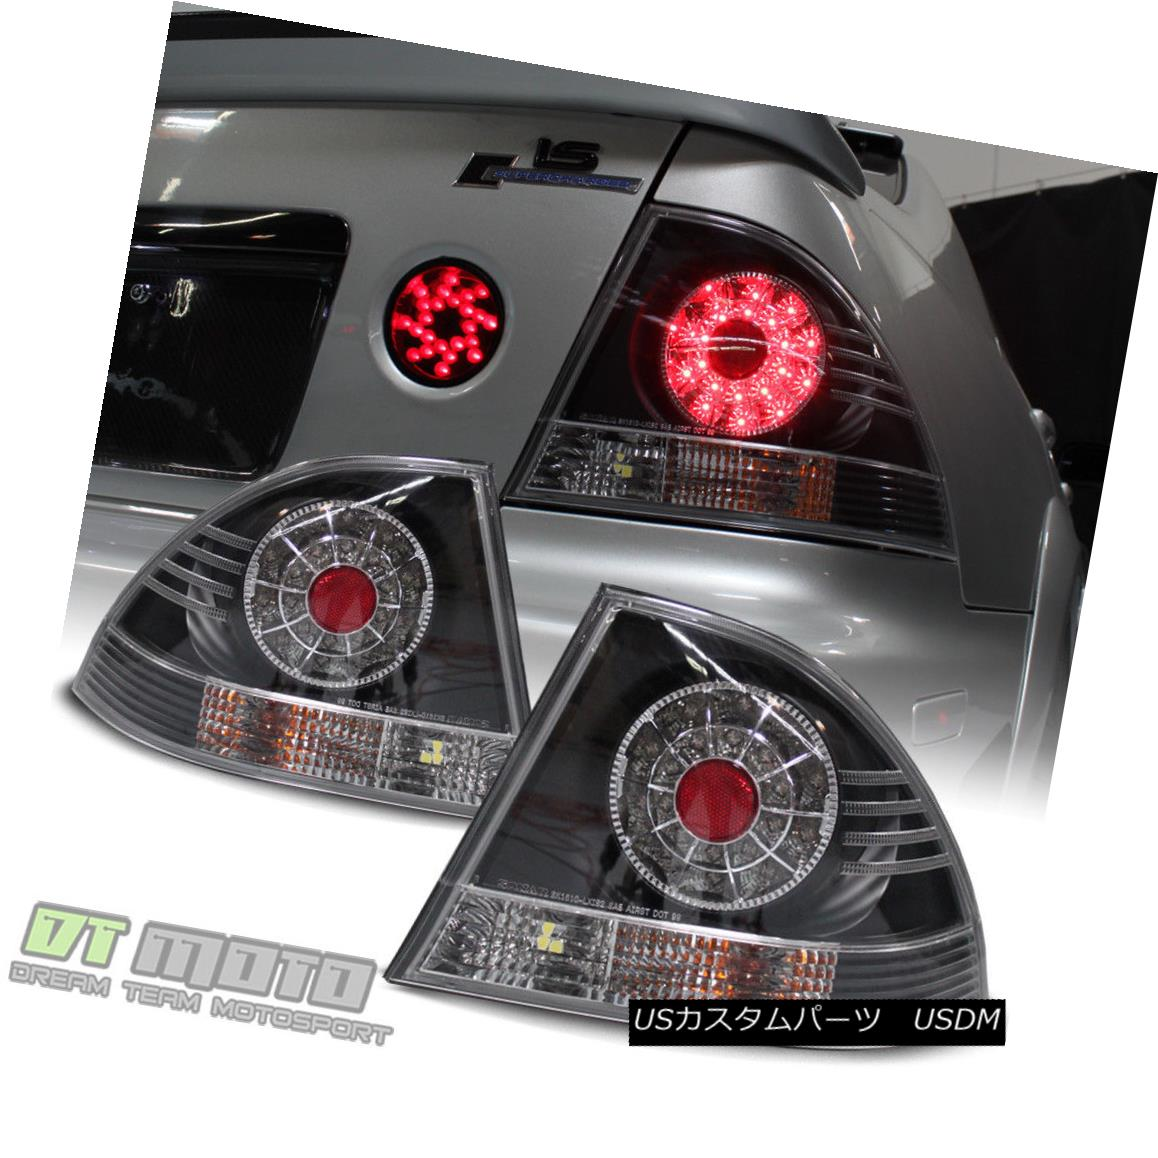 テールライト Black Black 2001-2005 Lexus IS300 Left+Right IS300 Philips-Lumileds LED Tail Lights Lamps Left+Right 黒2001-2005 Lexus IS300 Philips-Lumile ds LEDテールライトランプ左右+, 城下町金沢本舗:c314f19d --- officewill.xsrv.jp